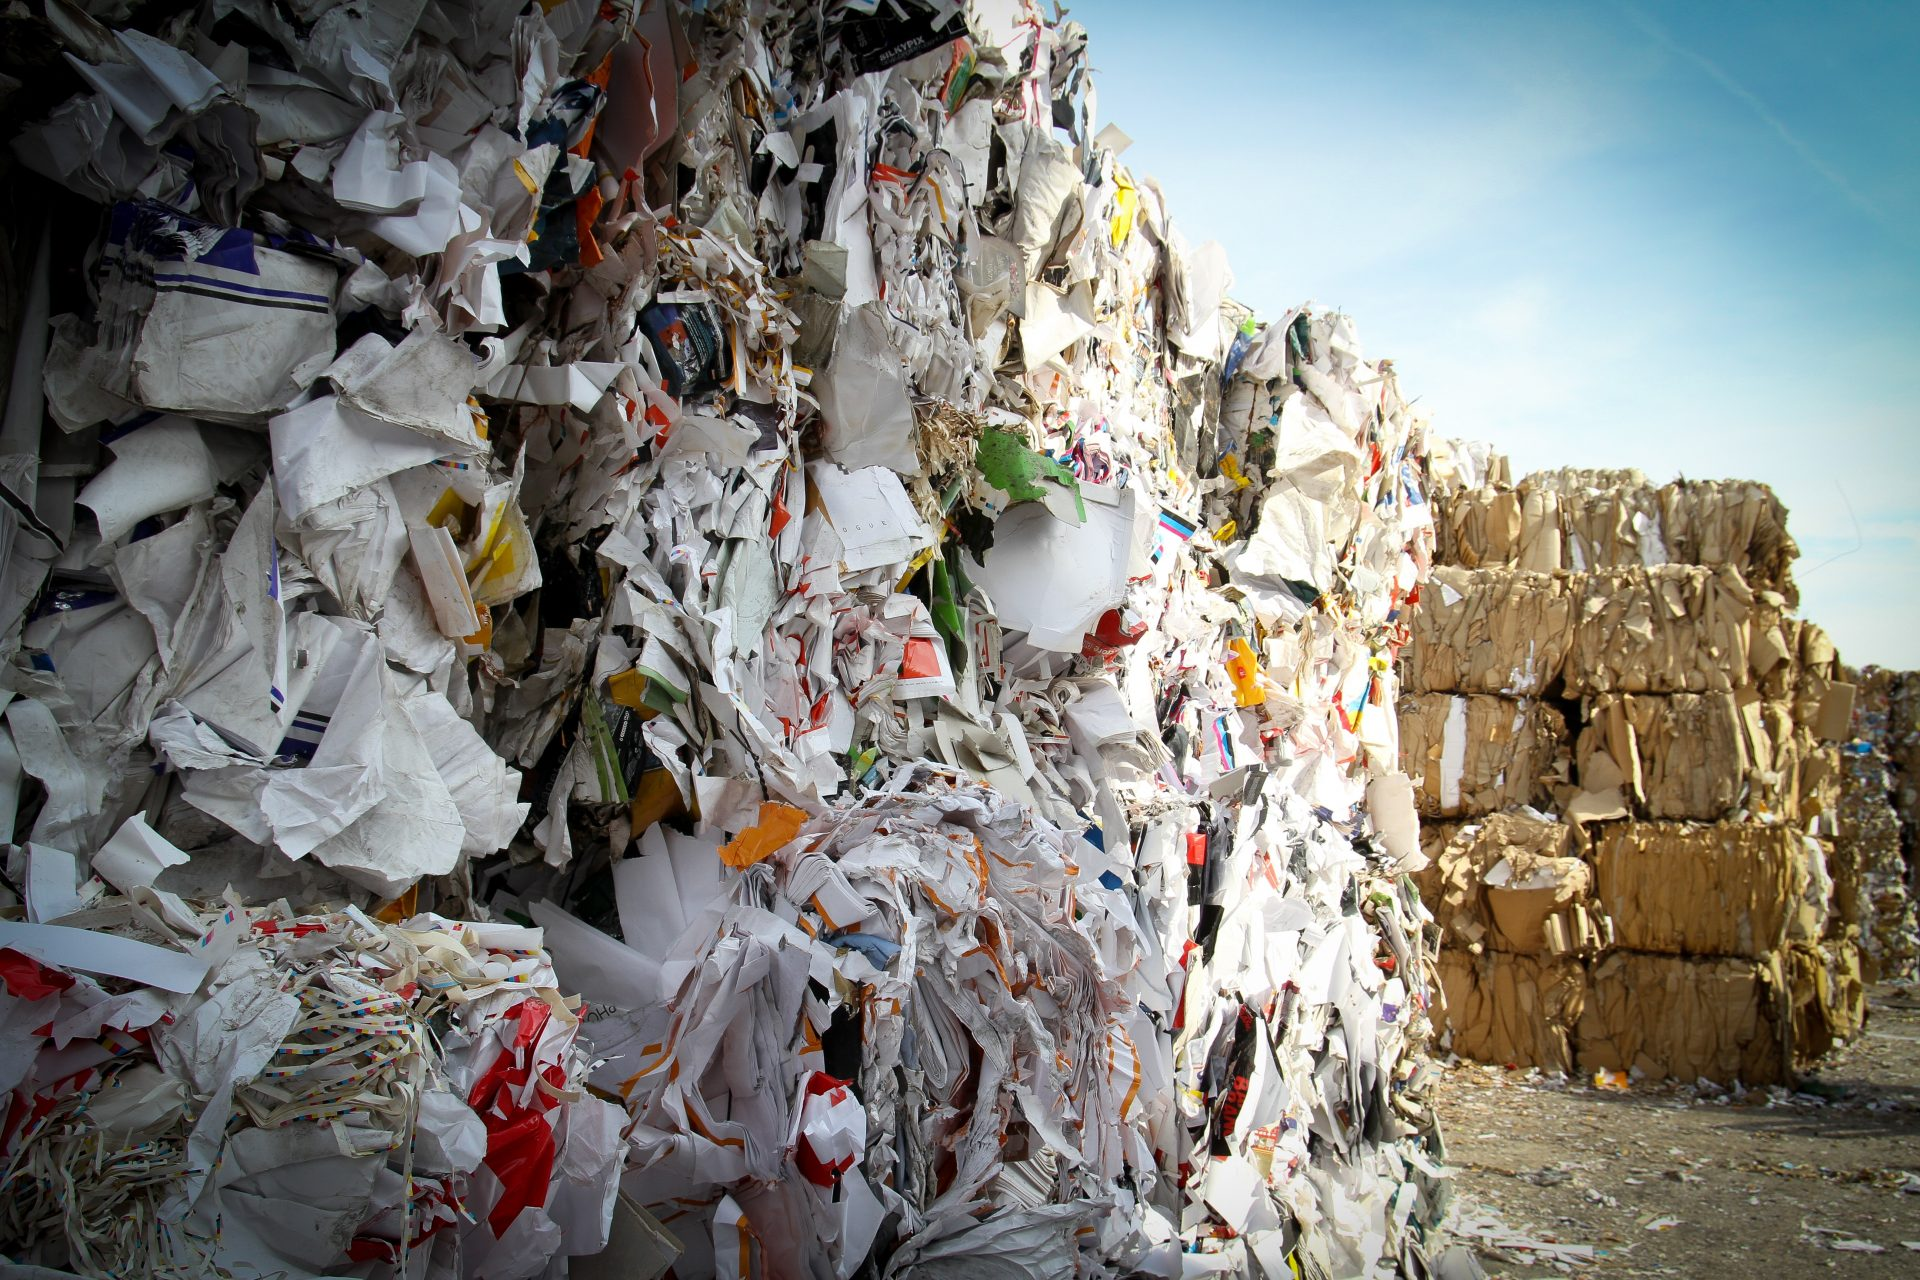 NPR's Fresh Air Episode about Waste & Recycling